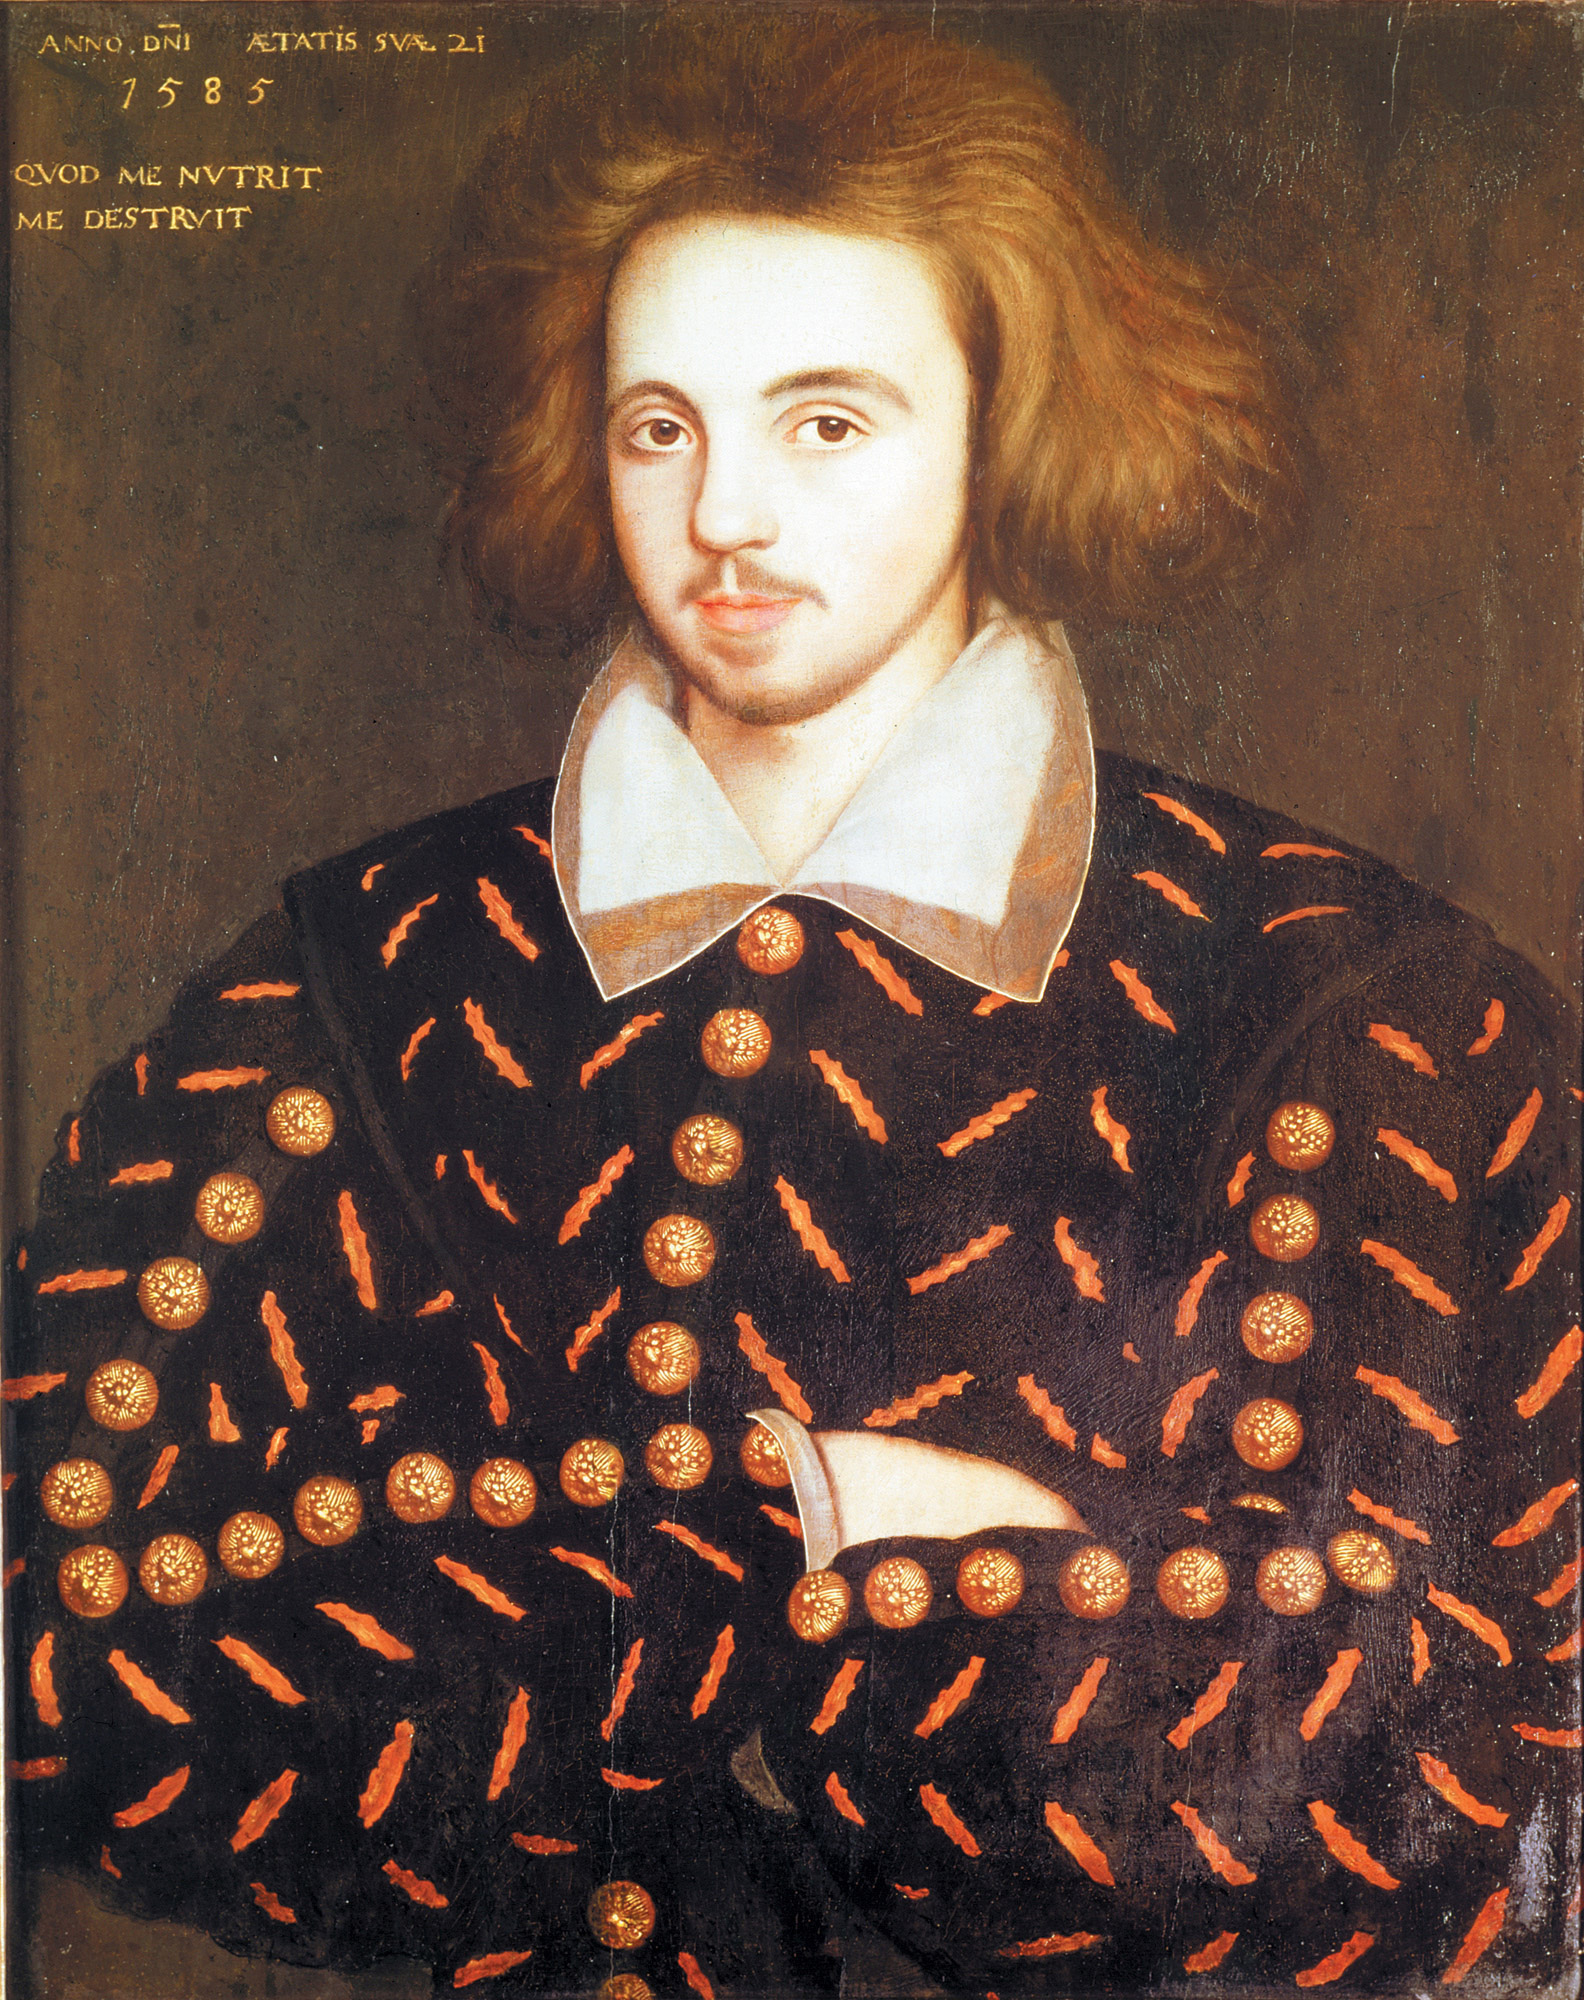 Portrait considered to be a possible likeness of Christopher Marlowe